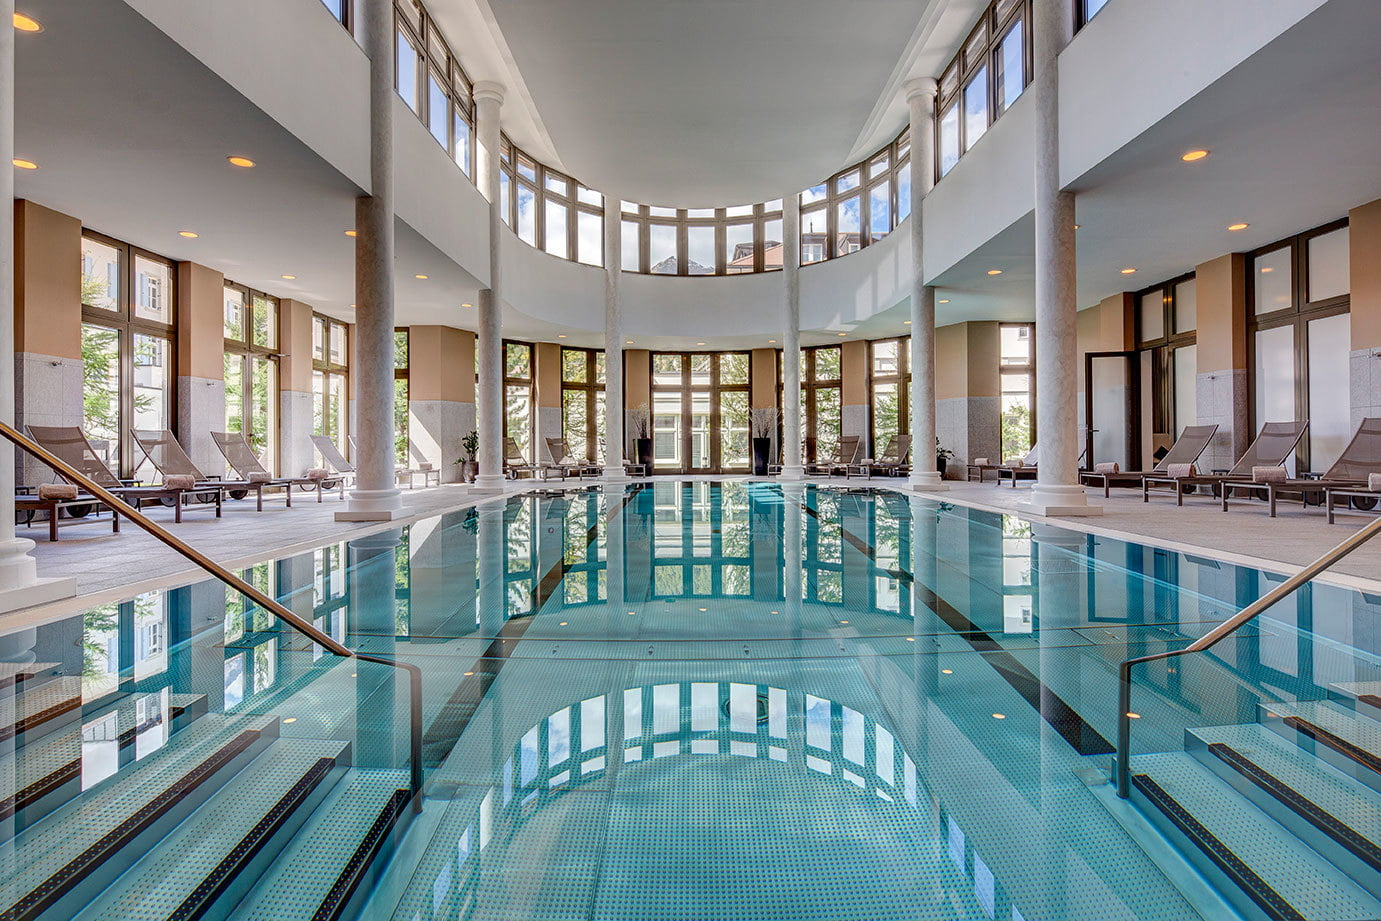 Wellness & Spa at Kempinski Grand Hotel des Bains